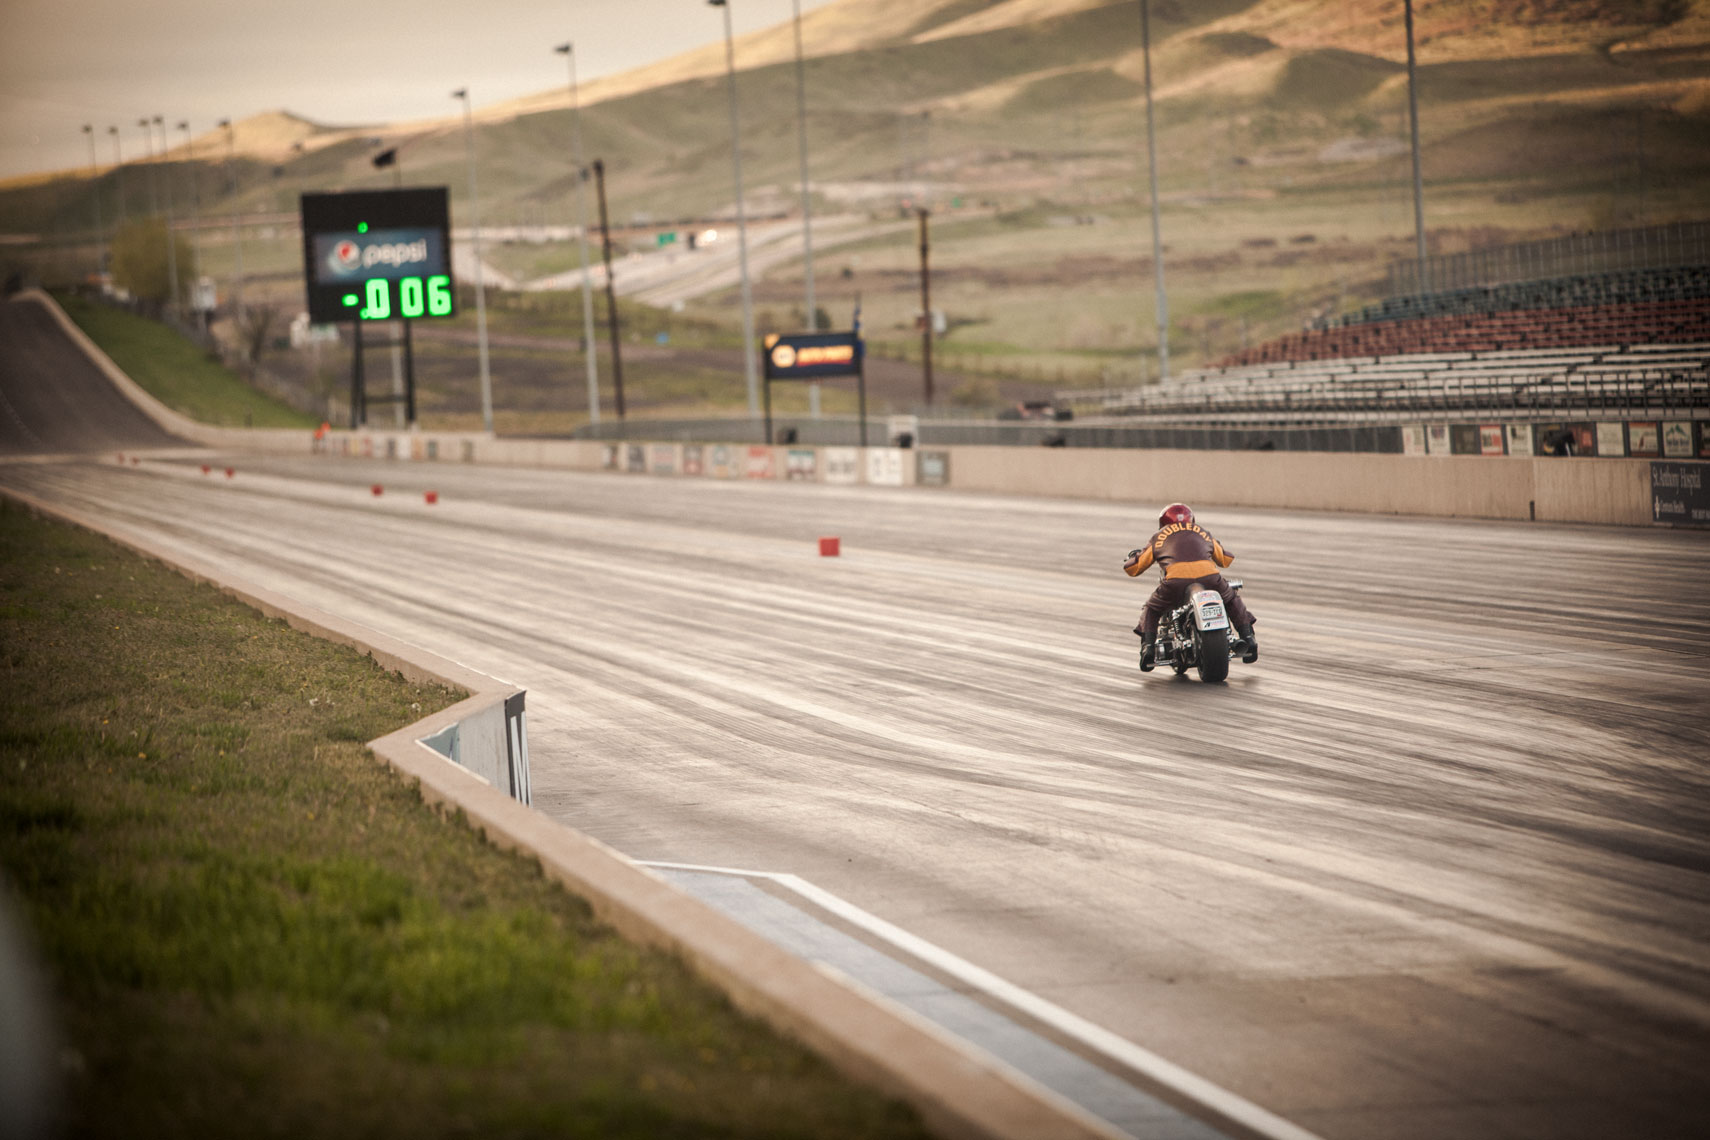 05 Location Photography Hammer Down Run Bandimere Speedway Denver Colorado Motorcyle NHRA Dragtrack